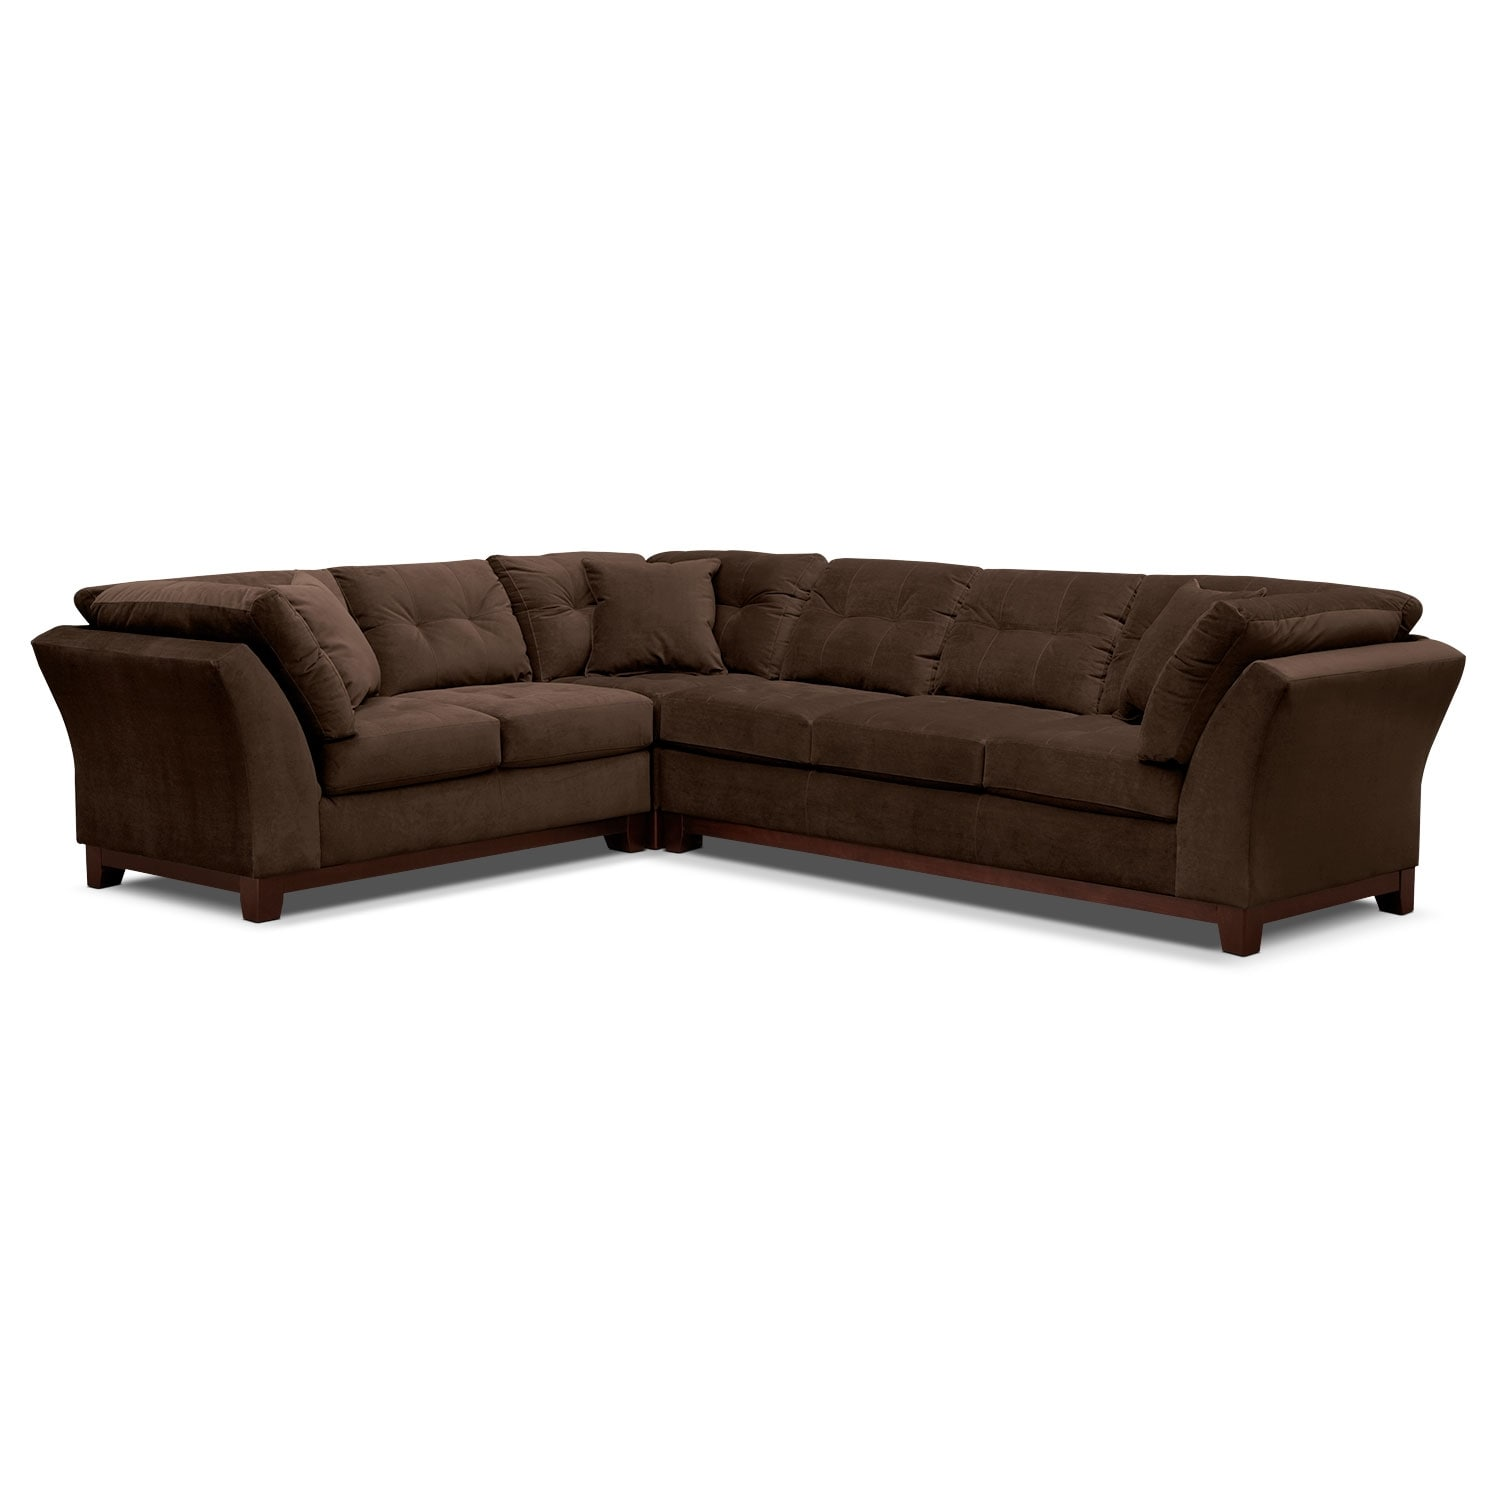 Solace 3-Piece Right-Facing Sofa Sectional - Chocolate